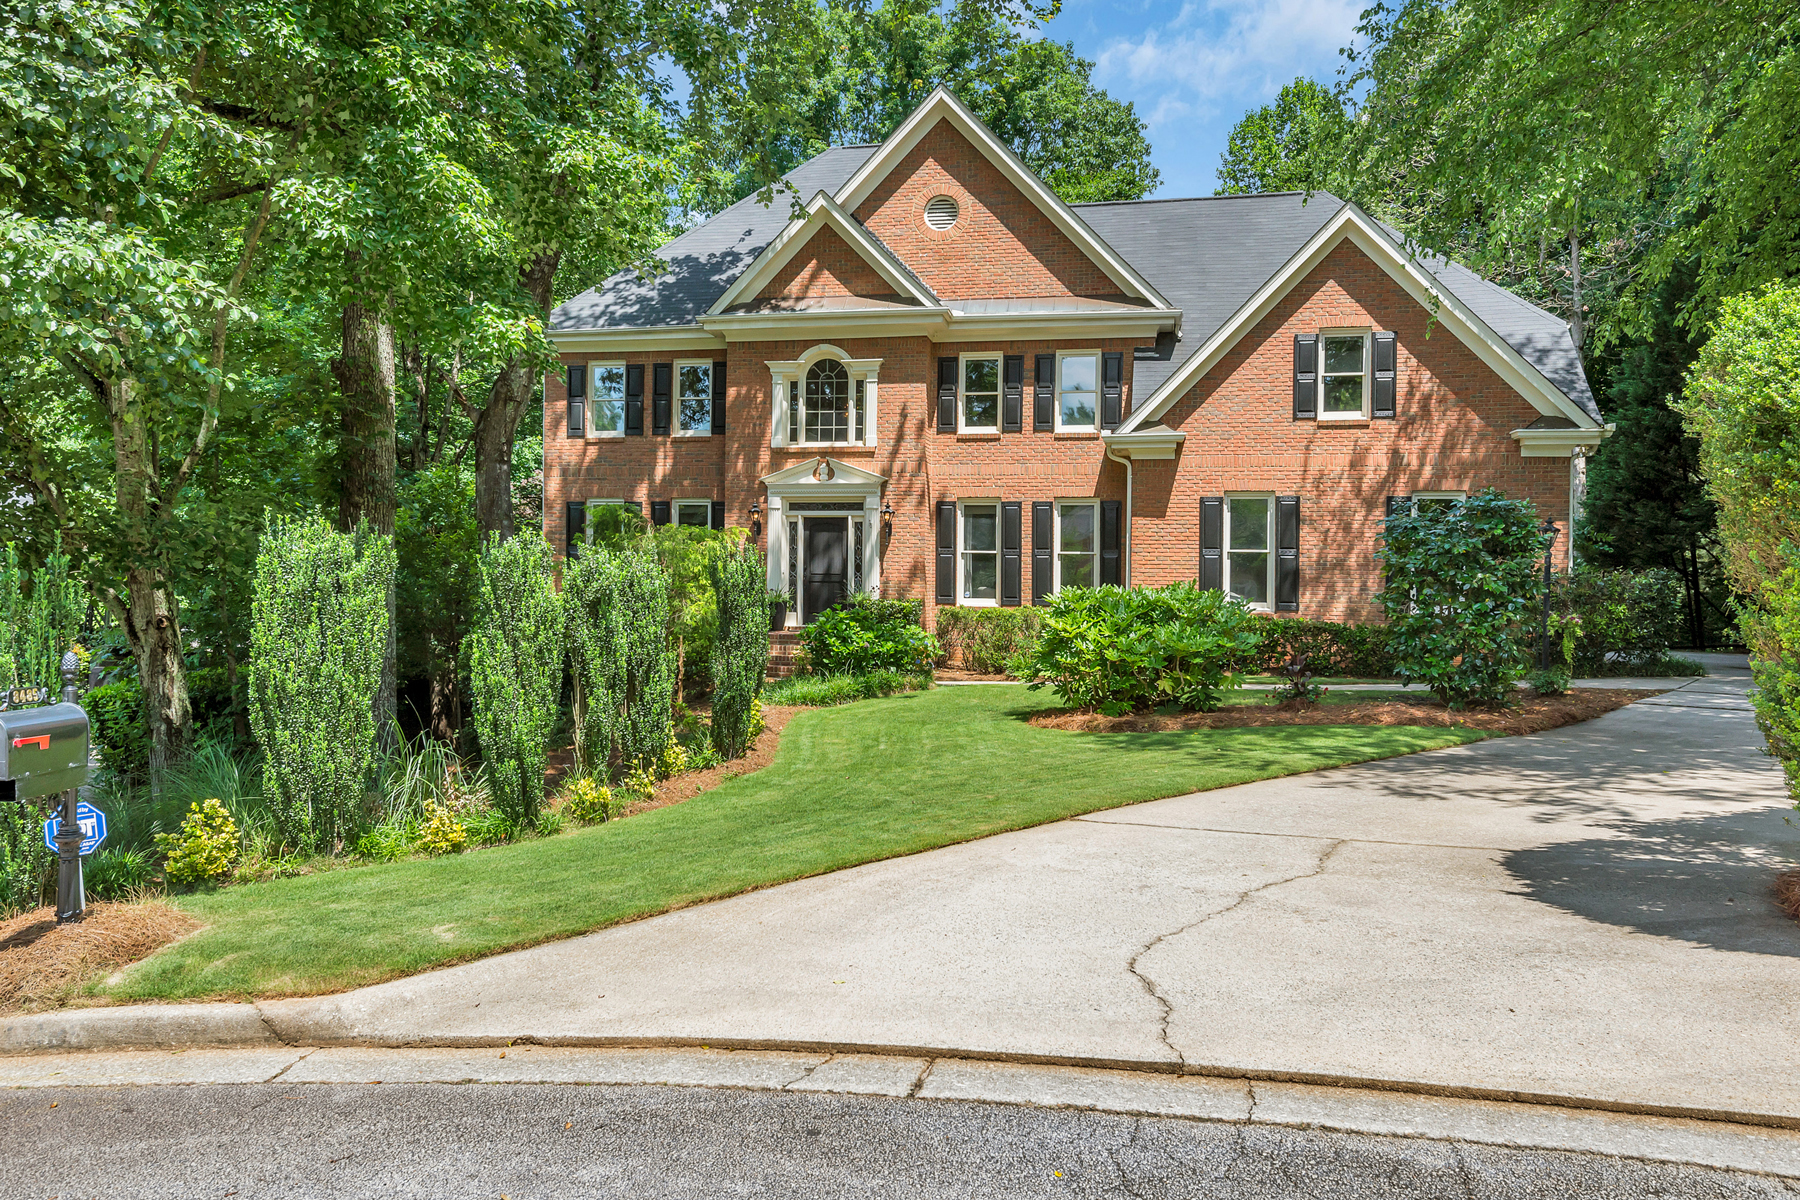 Single Family Home for Sale at Private Backyard Oasis 8485 Caney Creek Landing Alpharetta, Georgia 30005 United States